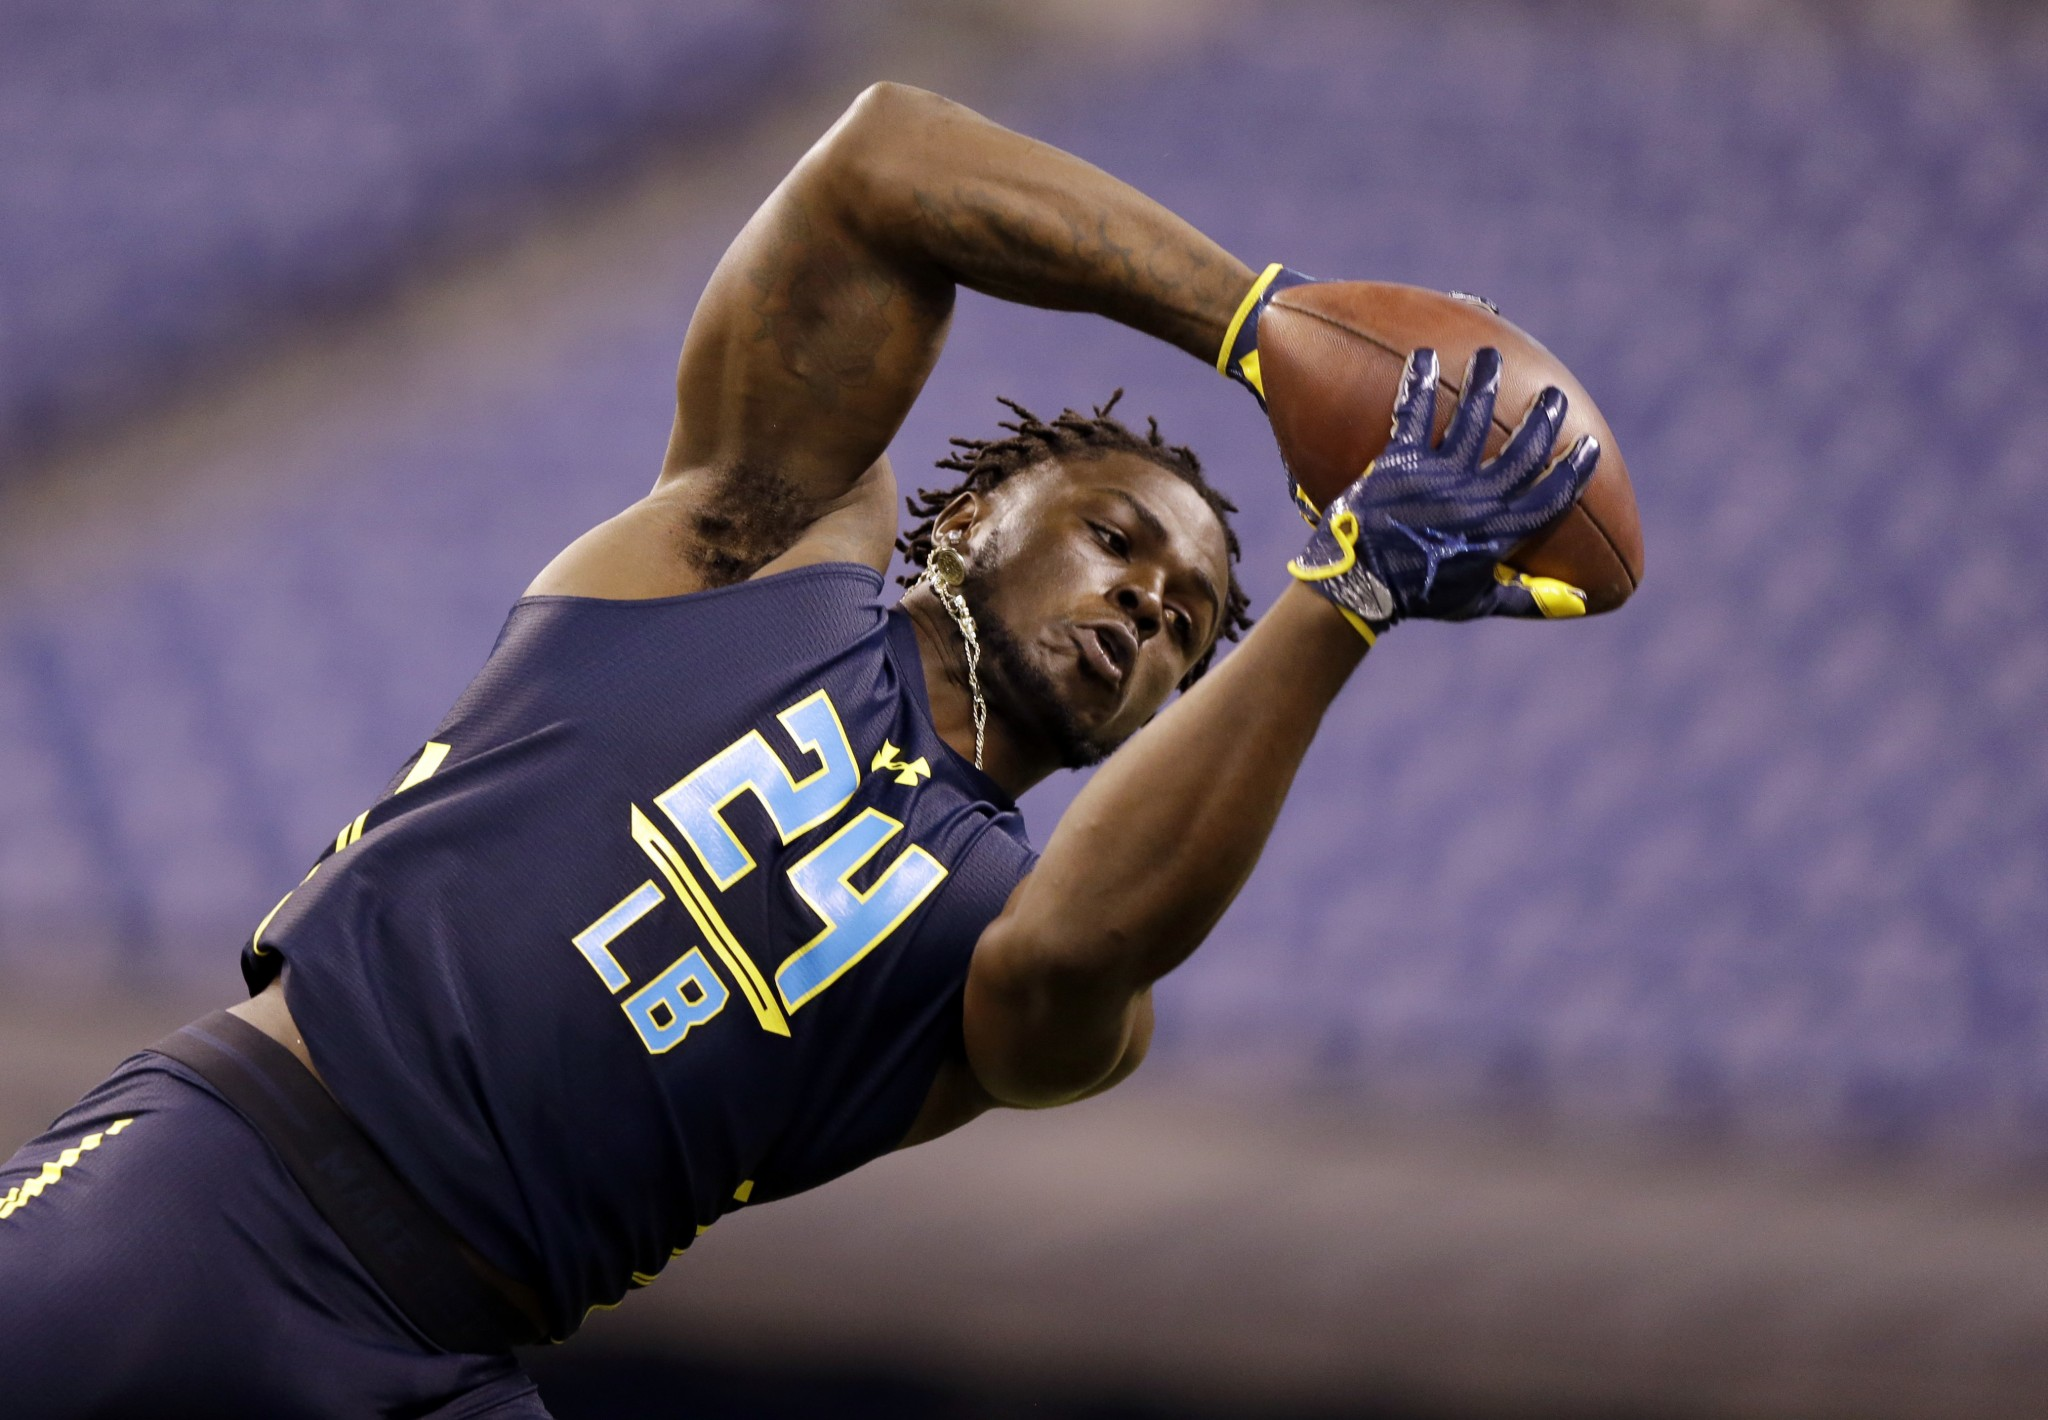 NFL draft profile: No. 30 — Michigan DB Jabrill Peppers, versatile but hotly debated player